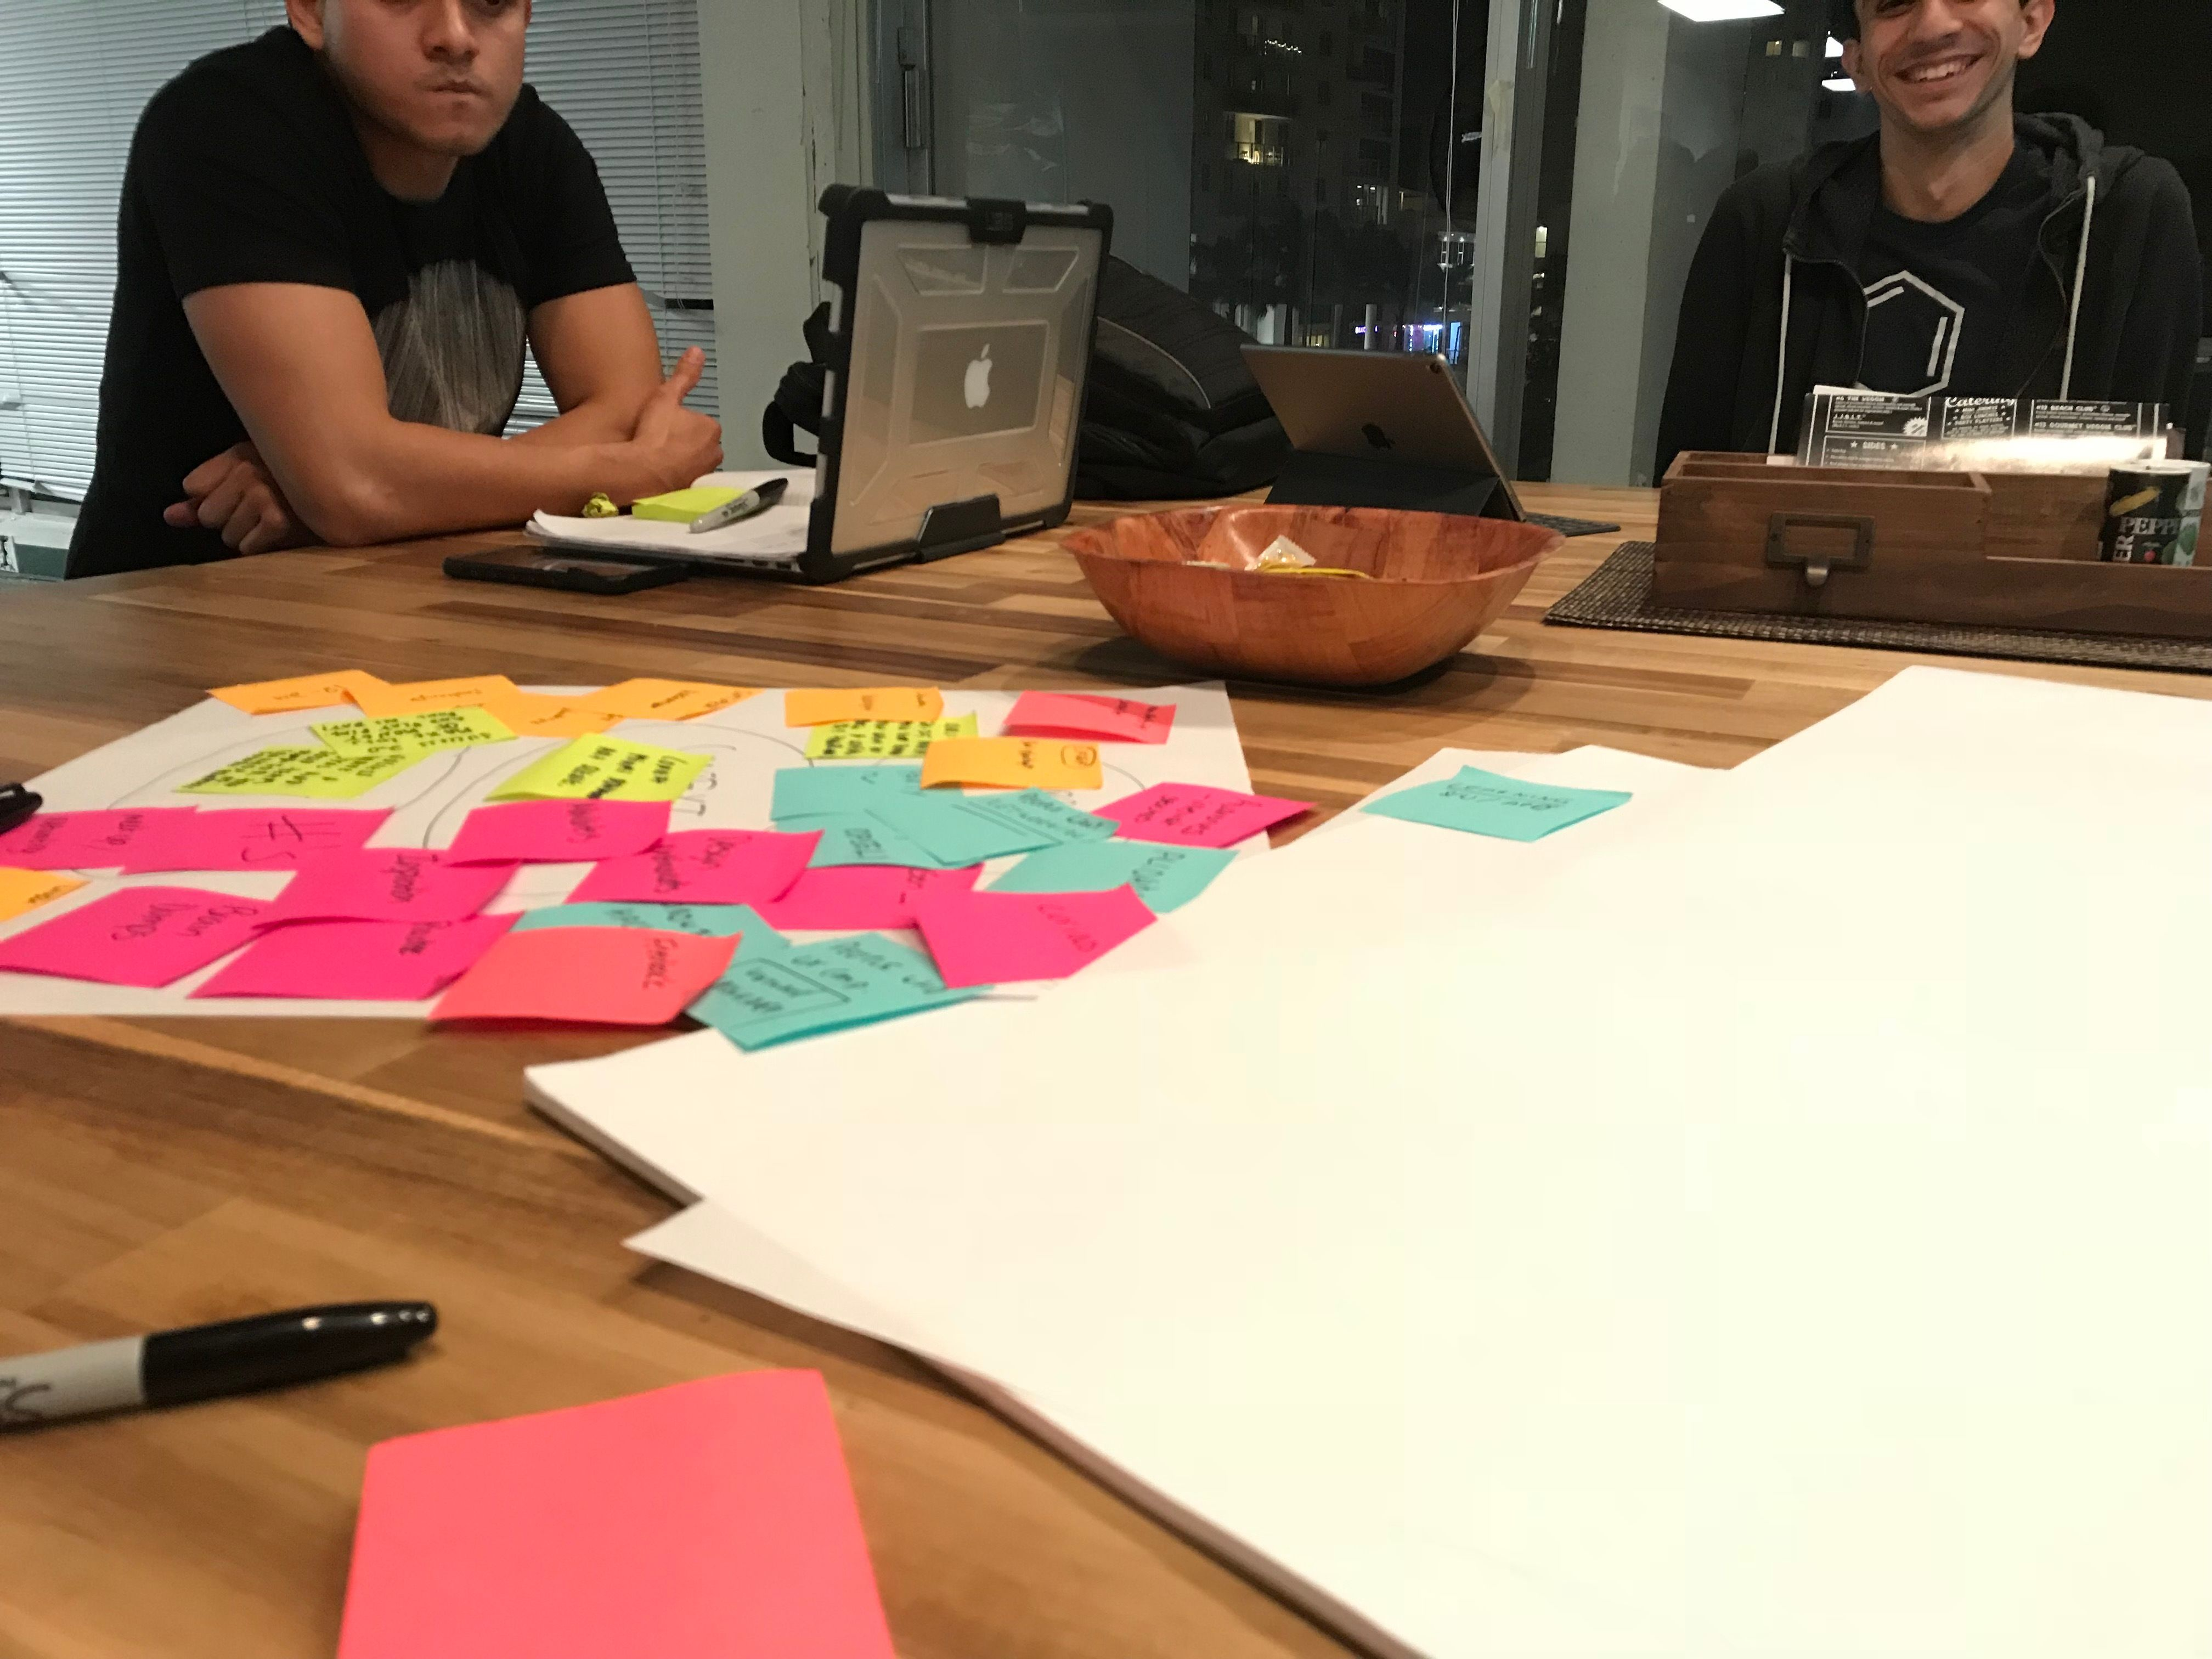 Miami Product Meetup